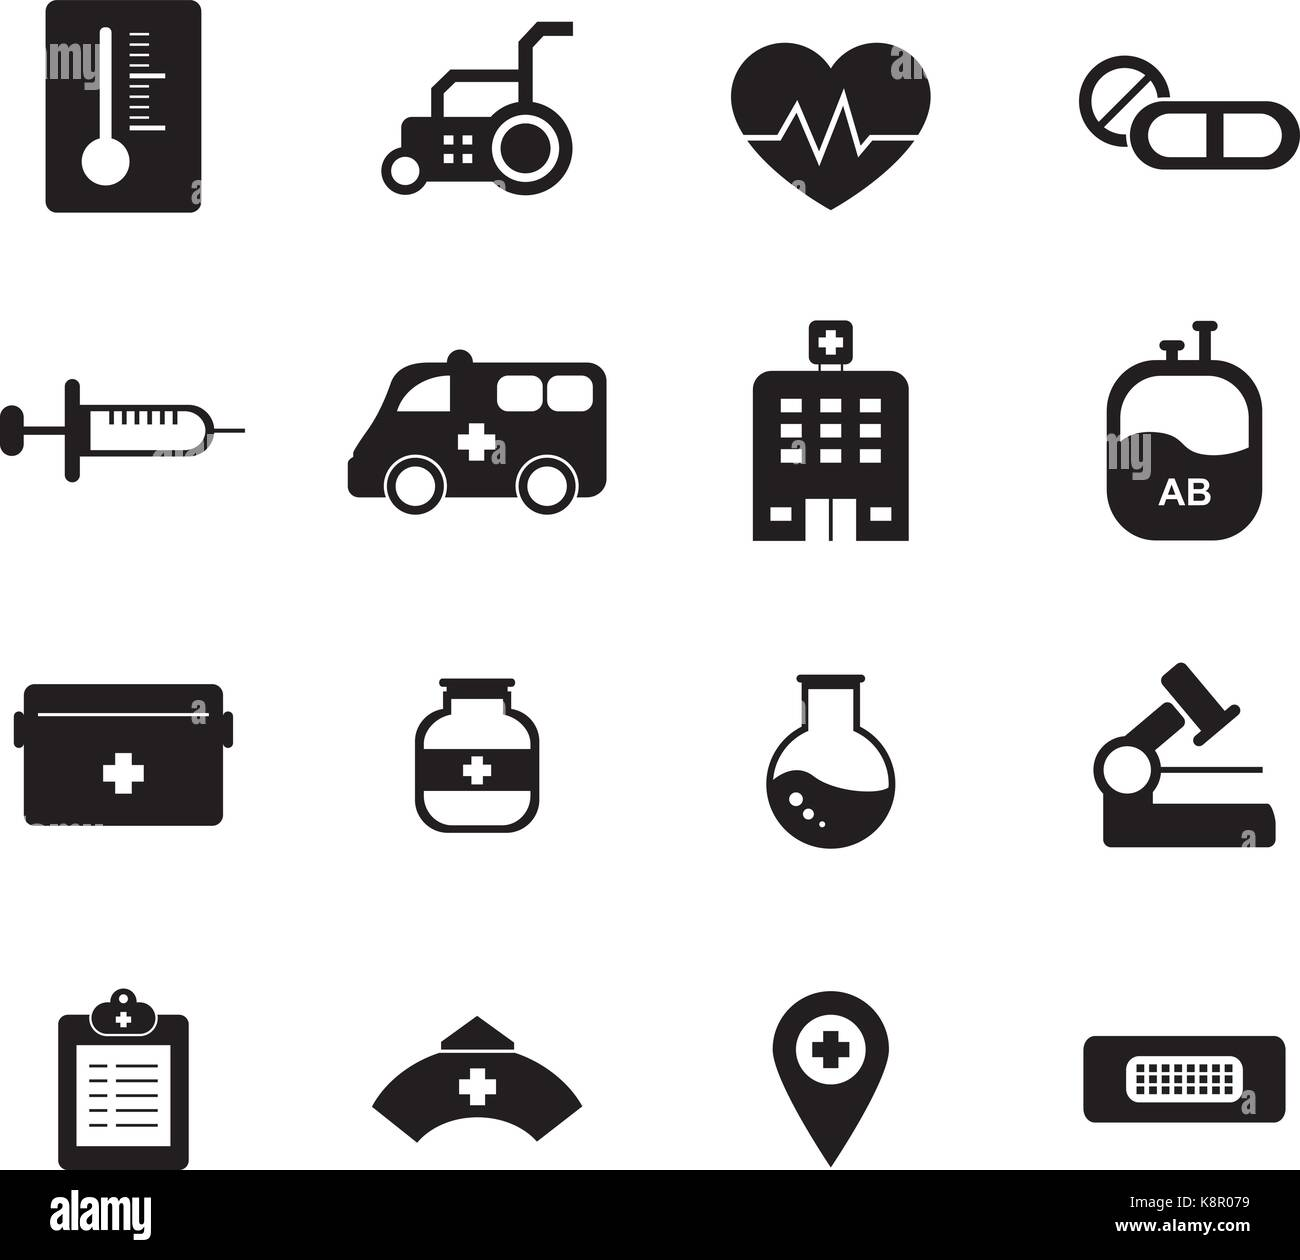 Hospital icon - Stock Vector